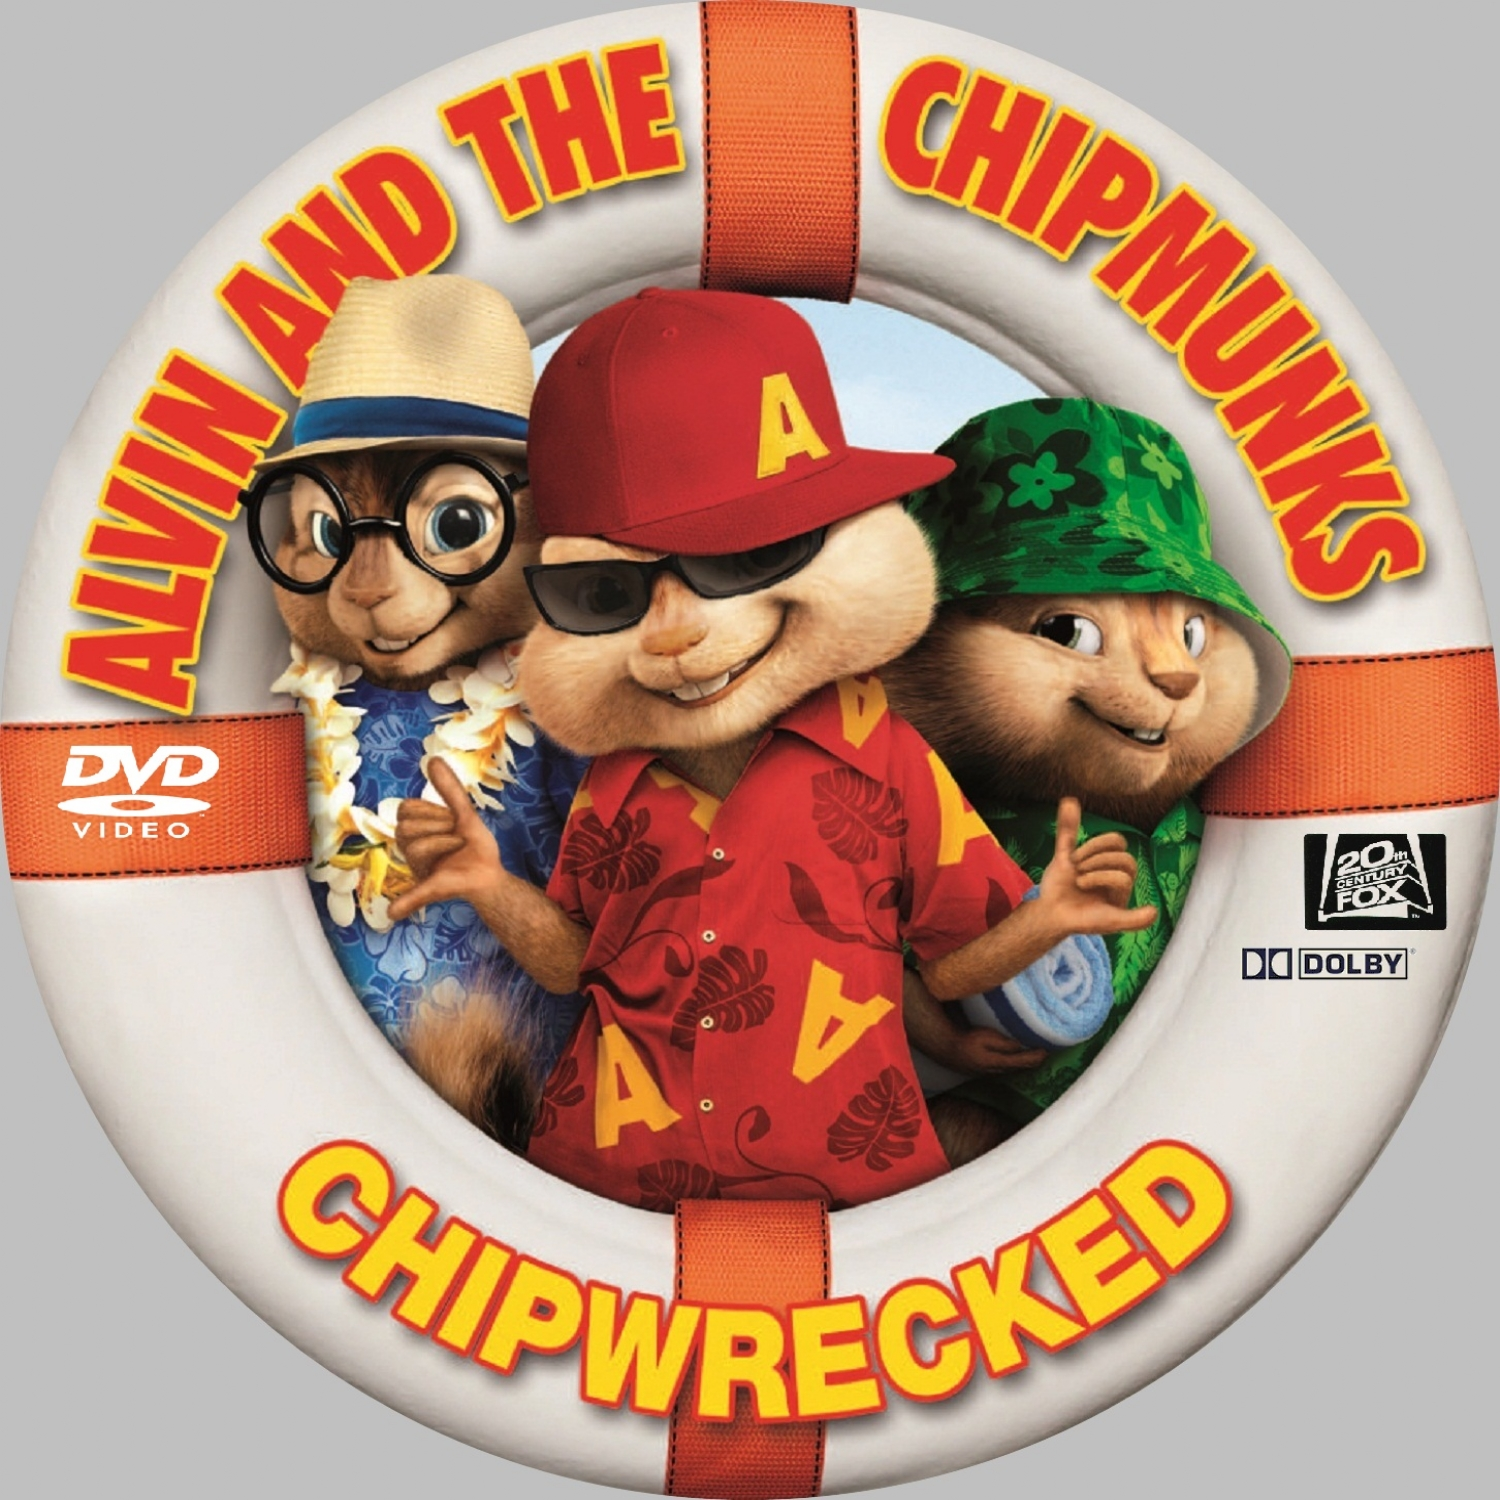 Covers Box Sk Alvin And The Chipmunks Chipwrecked 2011 High Quality Dvd Blueray Movie